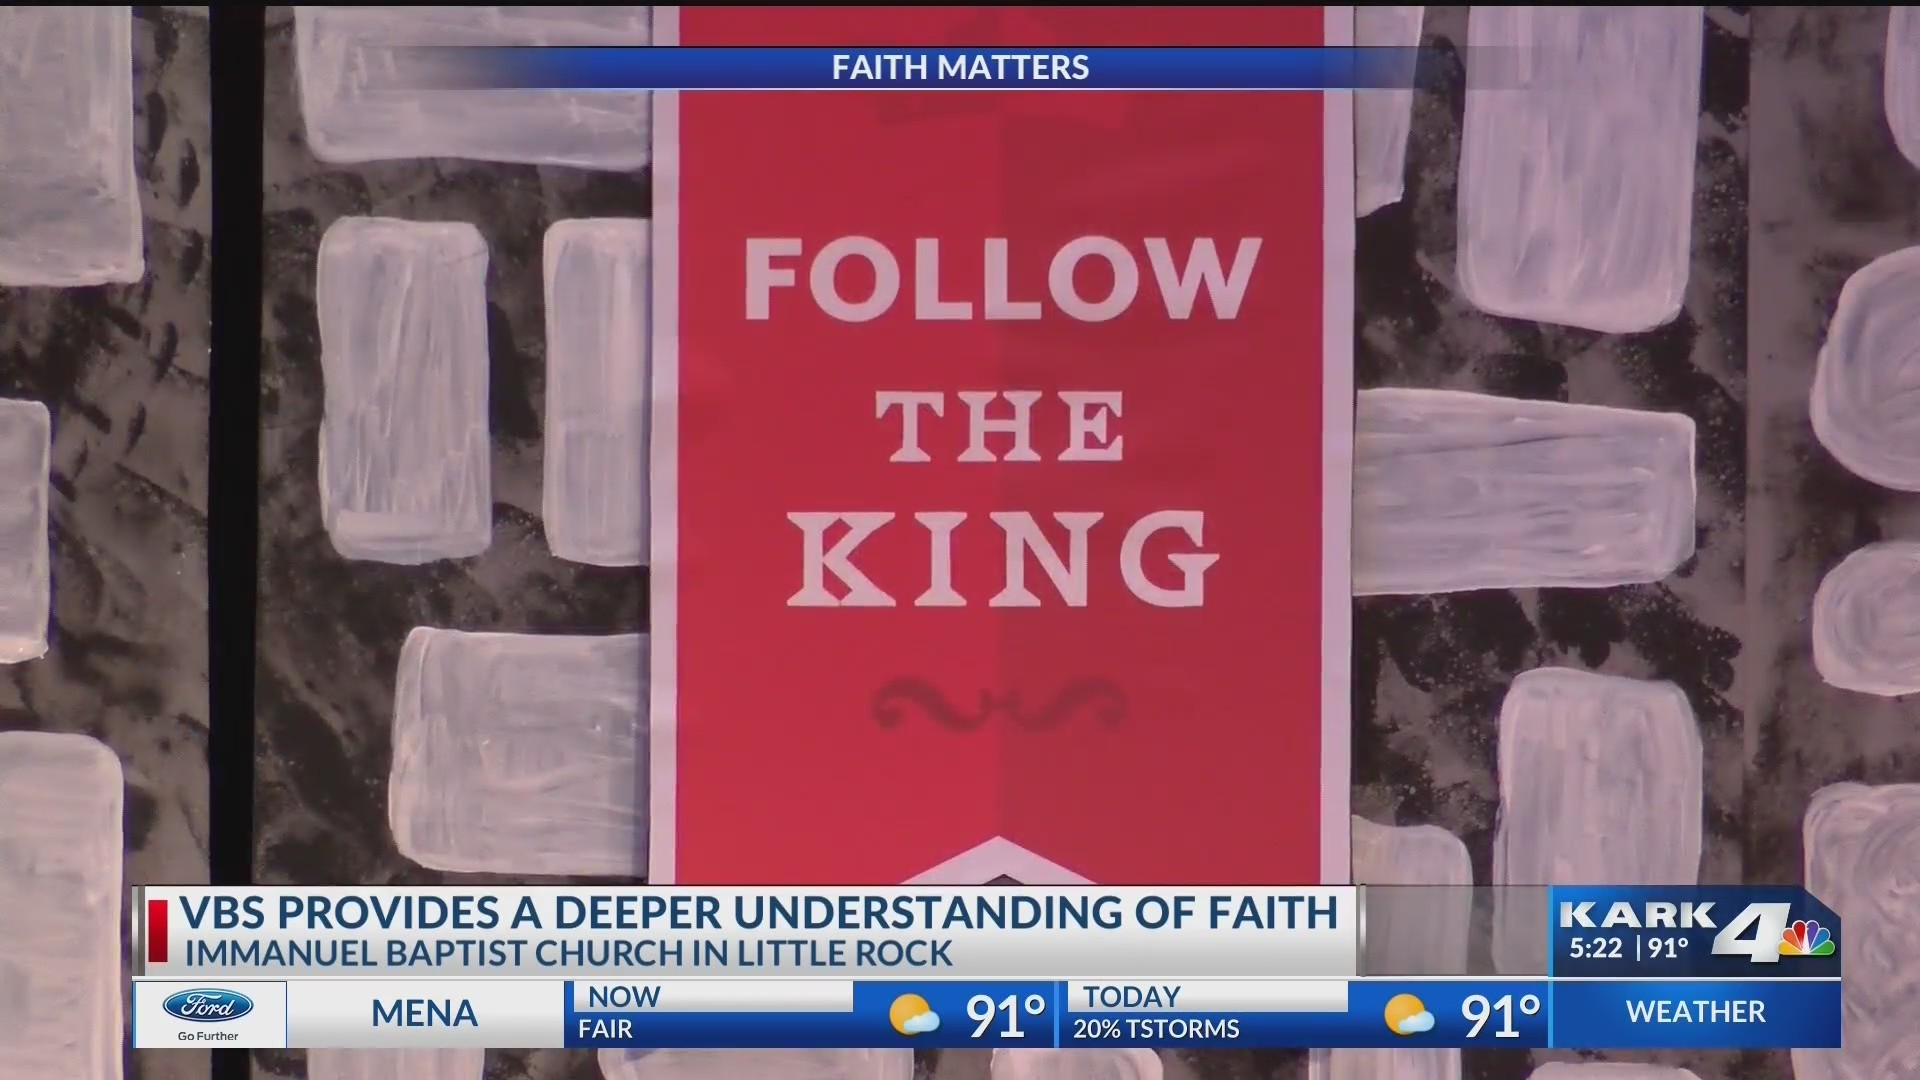 Faith_Matters__VBS_provides_a_deeper_und_0_20190621223502